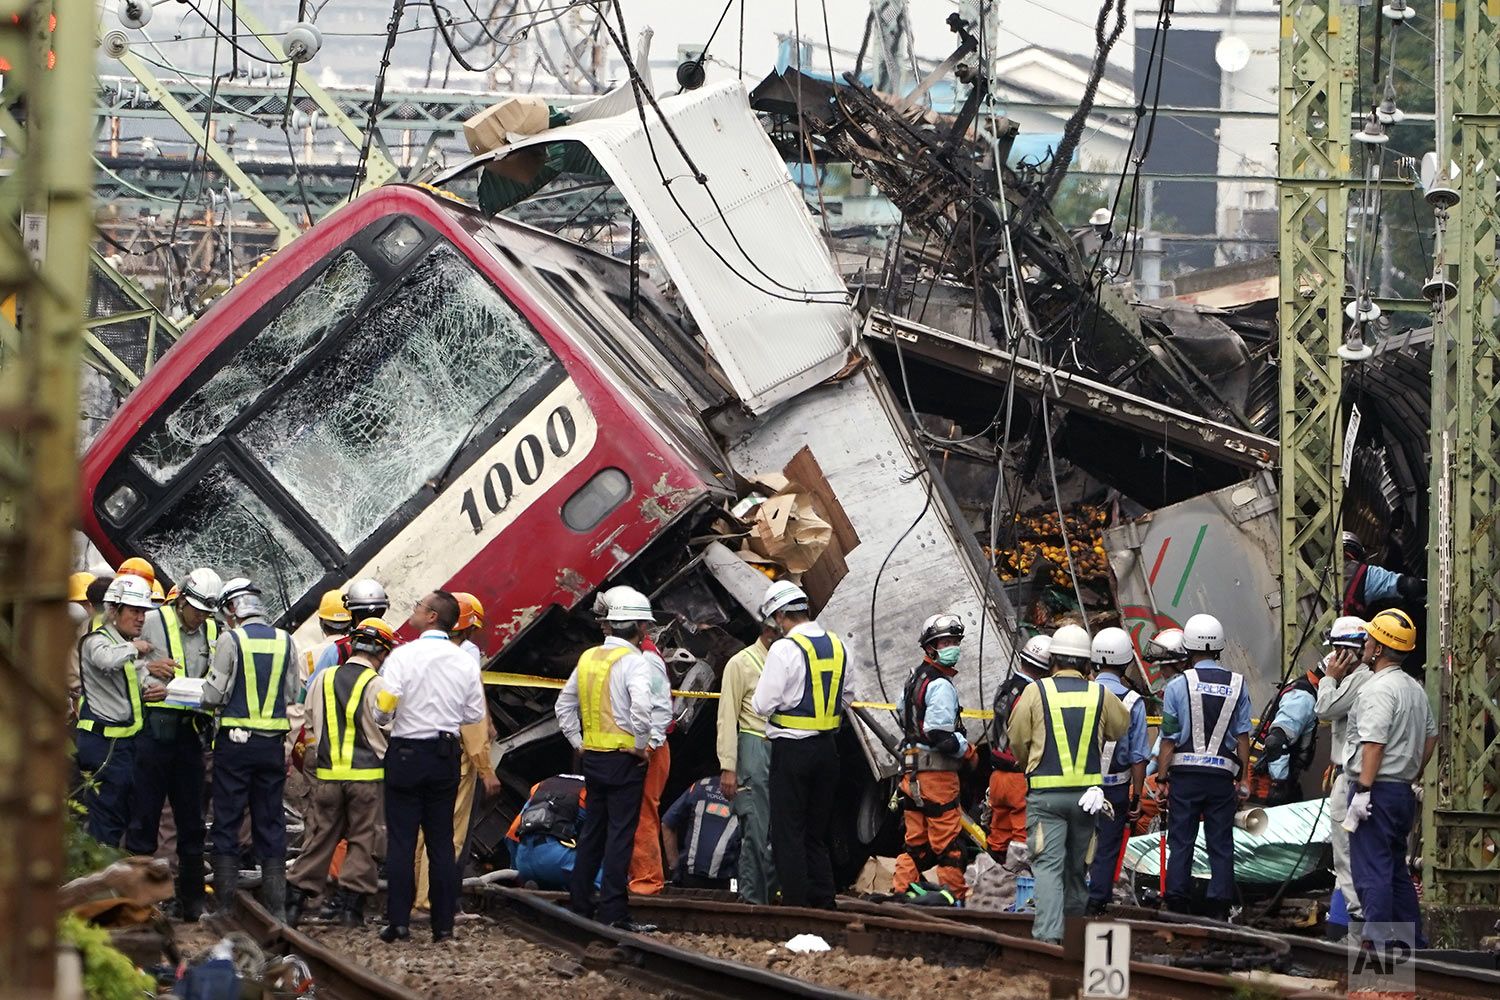 The Keikyu express train sits derailed after its collision with a truck in Yokohama, south of Tokyo Thursday, Sept. 5, 2019. (AP Photo/Eugene Hoshiko)